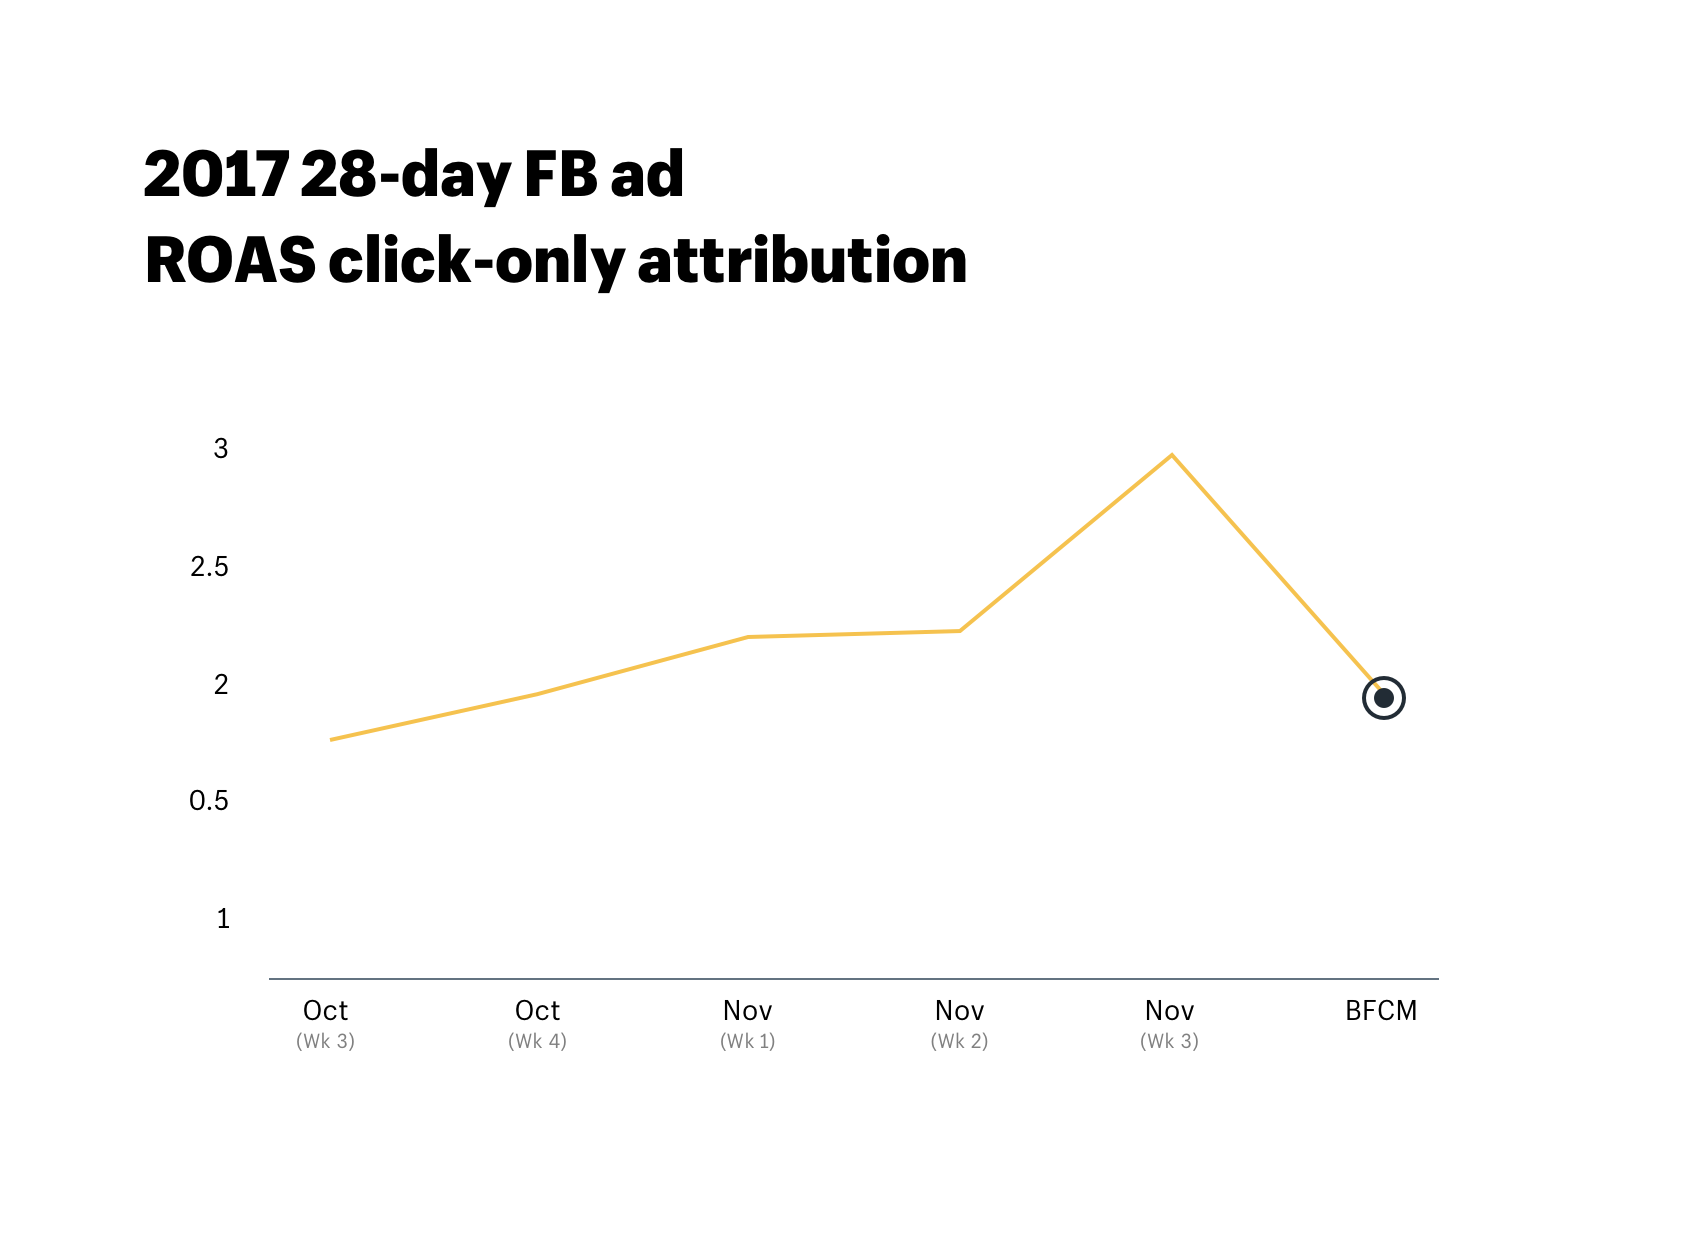 2017 28-day Black Friday Facebook ad ROAS click-only attribution